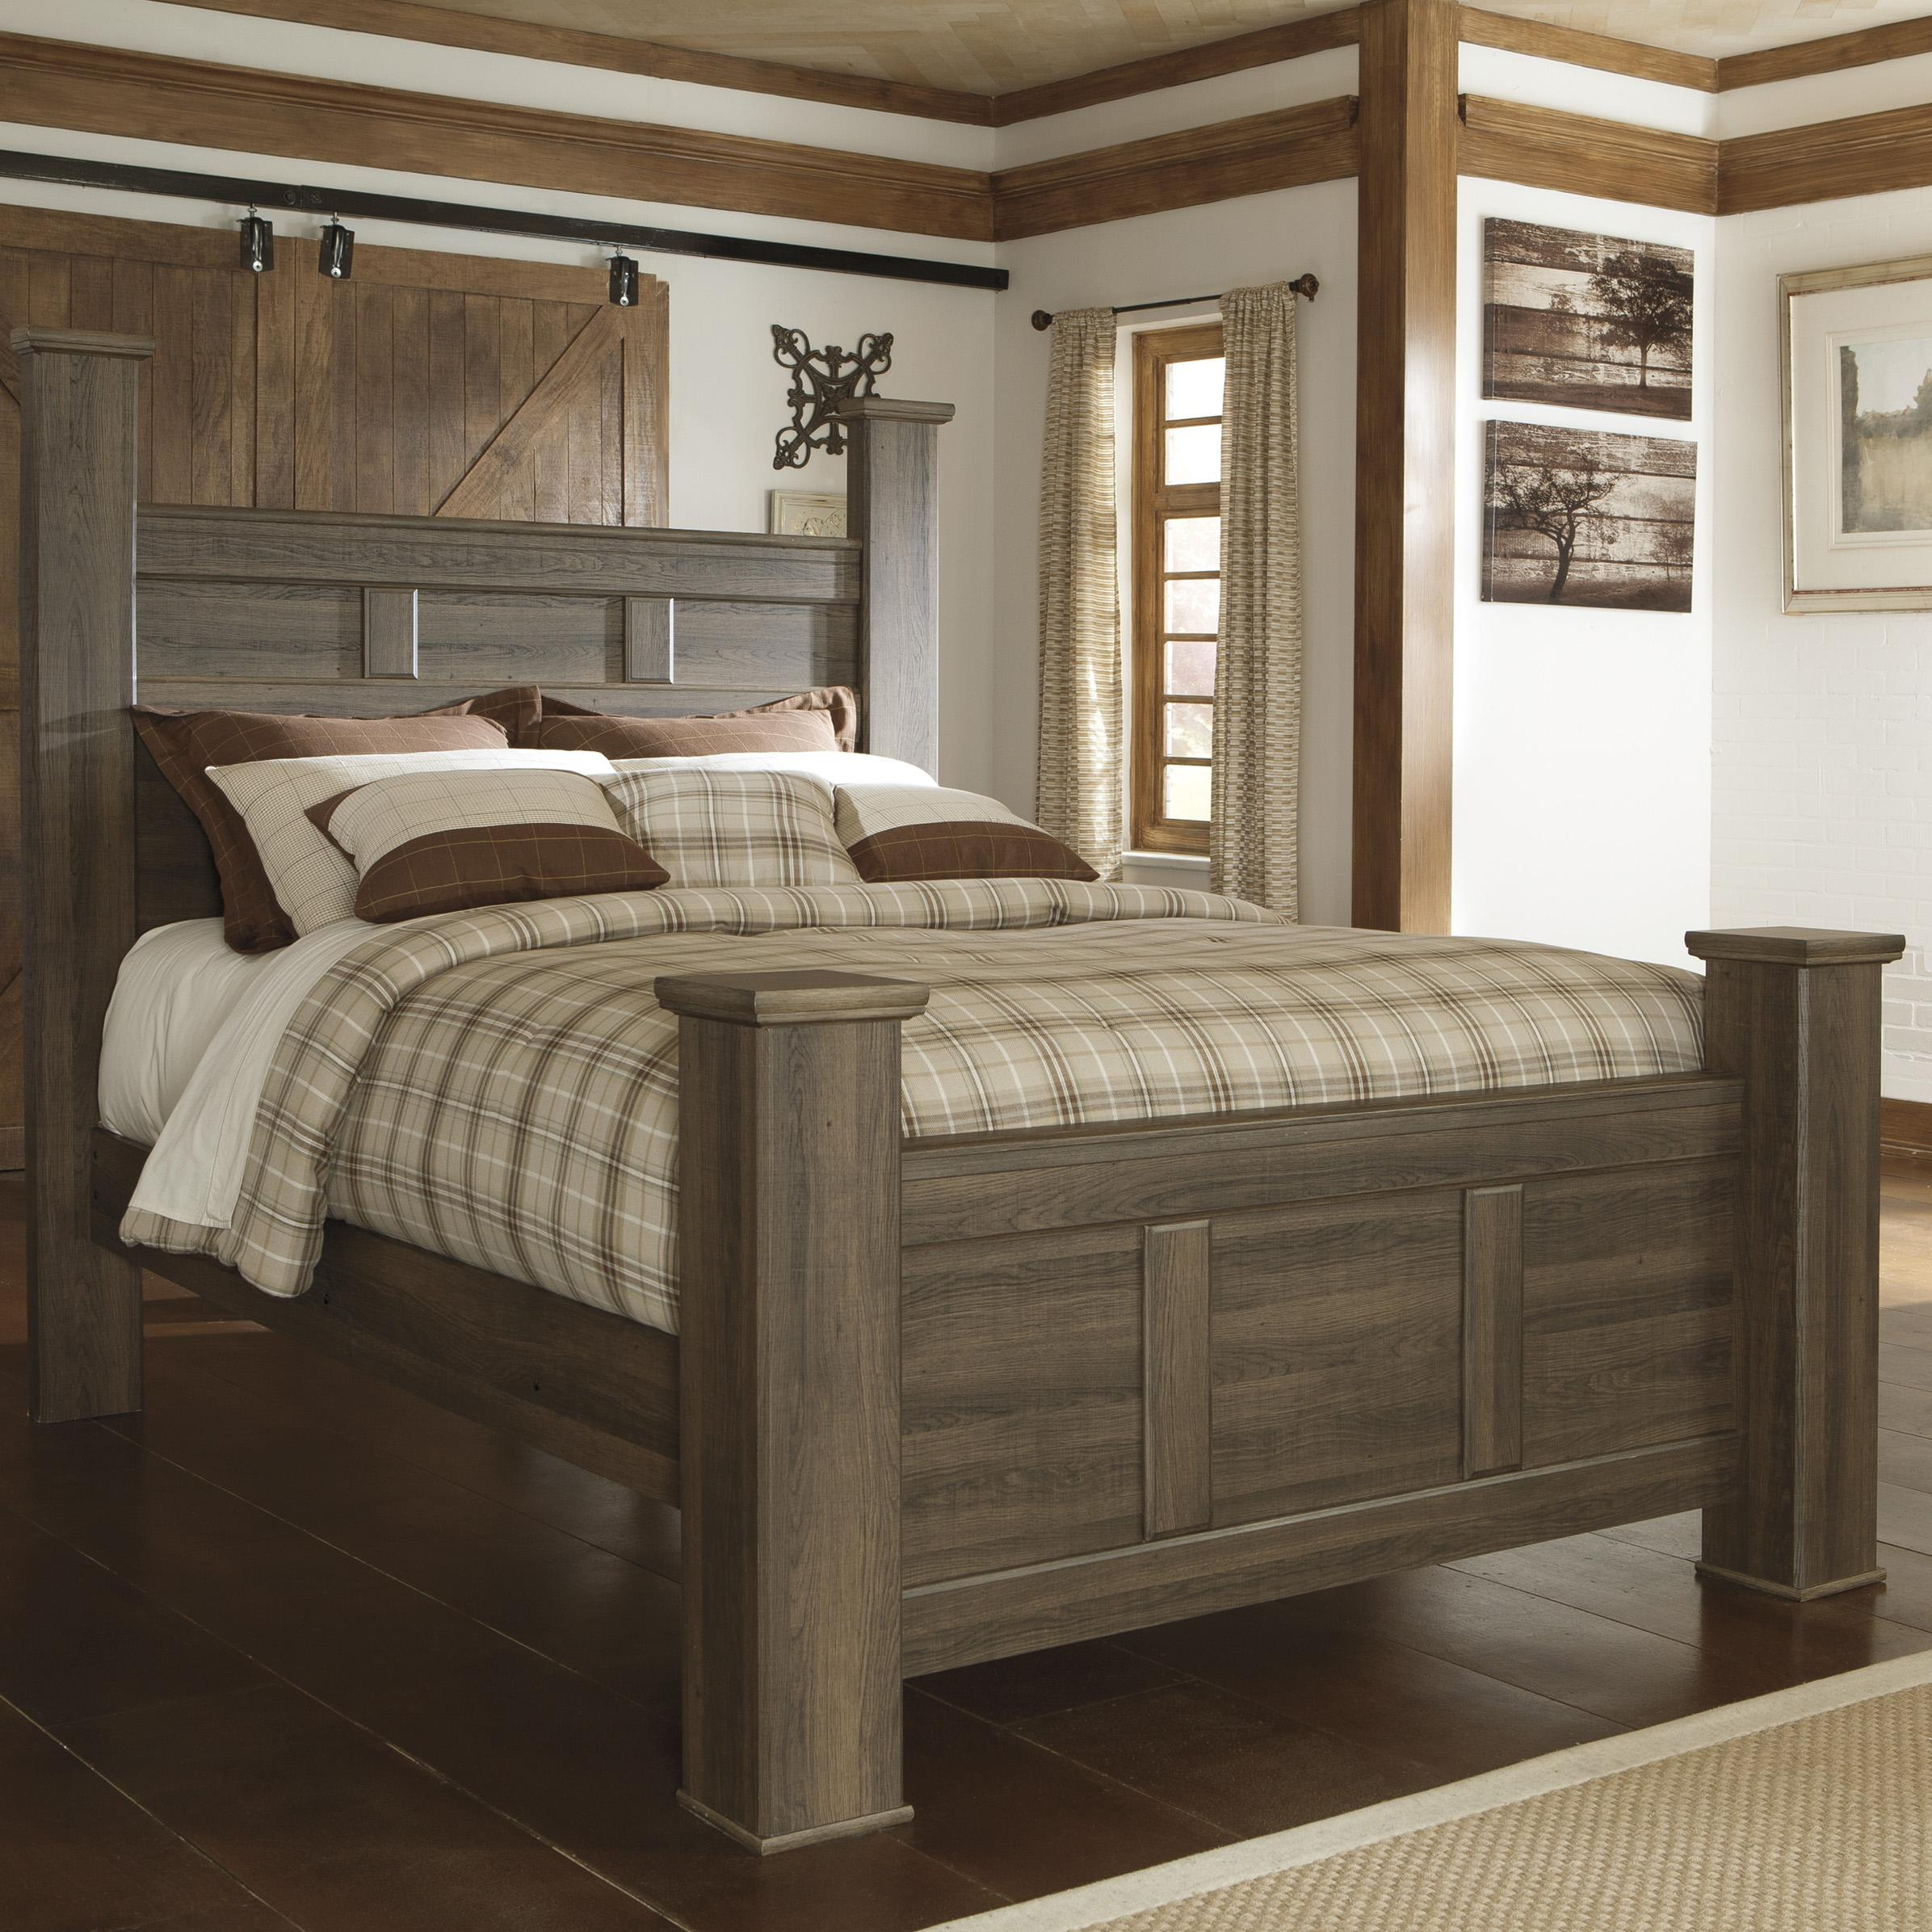 Juararo Queen Poster Bed by Signature Design by Ashley at Northeast Factory Direct